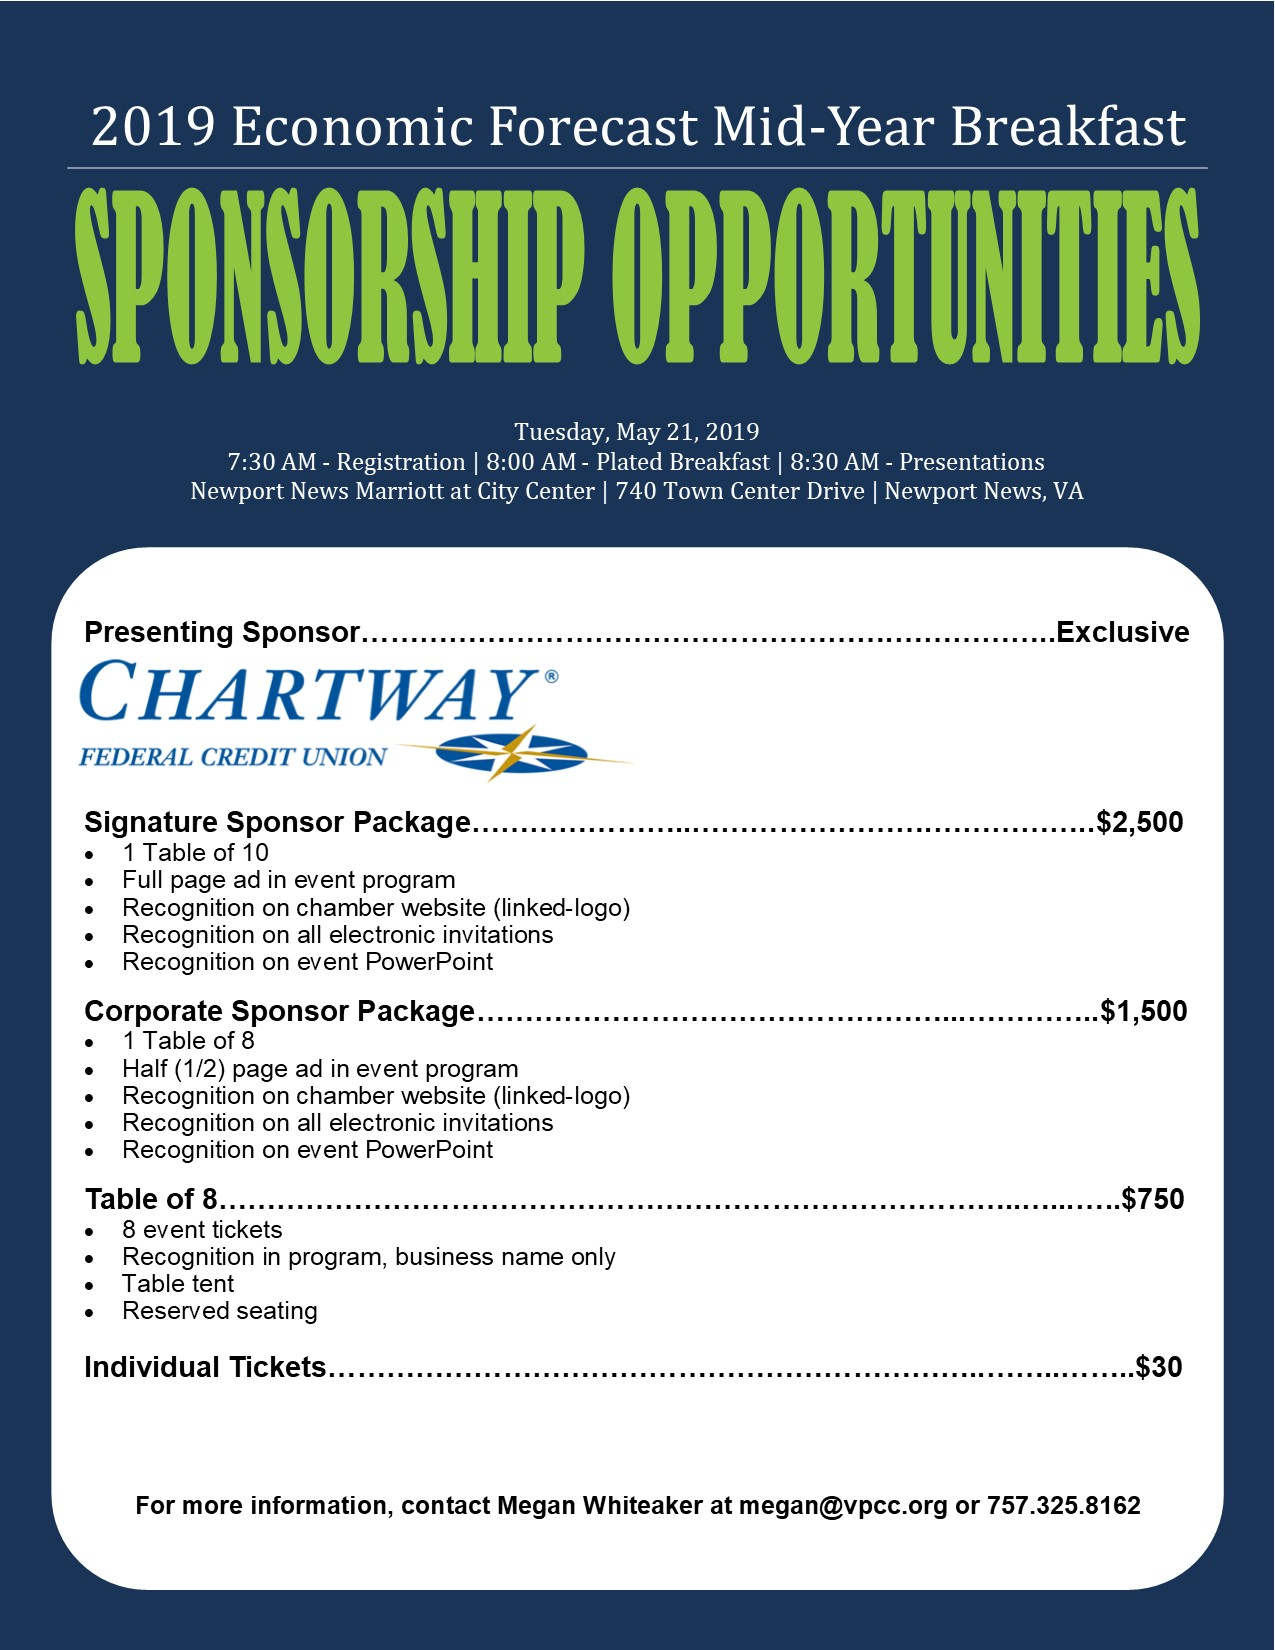 2019-0521-Economic-Forecast-Mid-Year-Breakfast-(SPONSORSHIPS).jpg